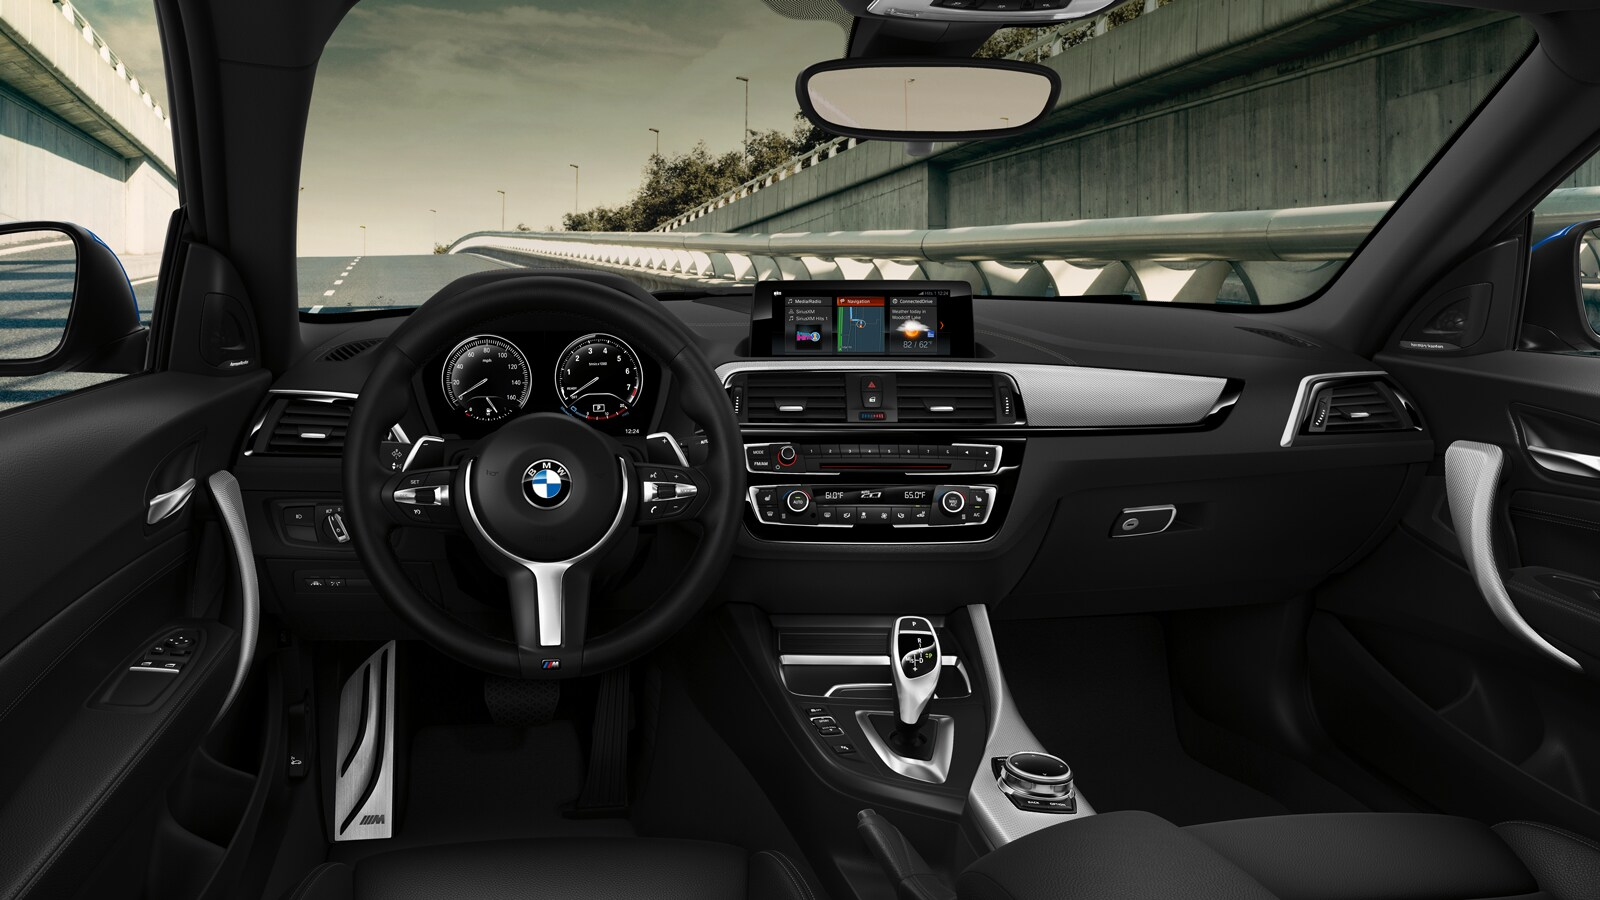 2020 BMW 2 Series 230i Front View Interior Dash Picture